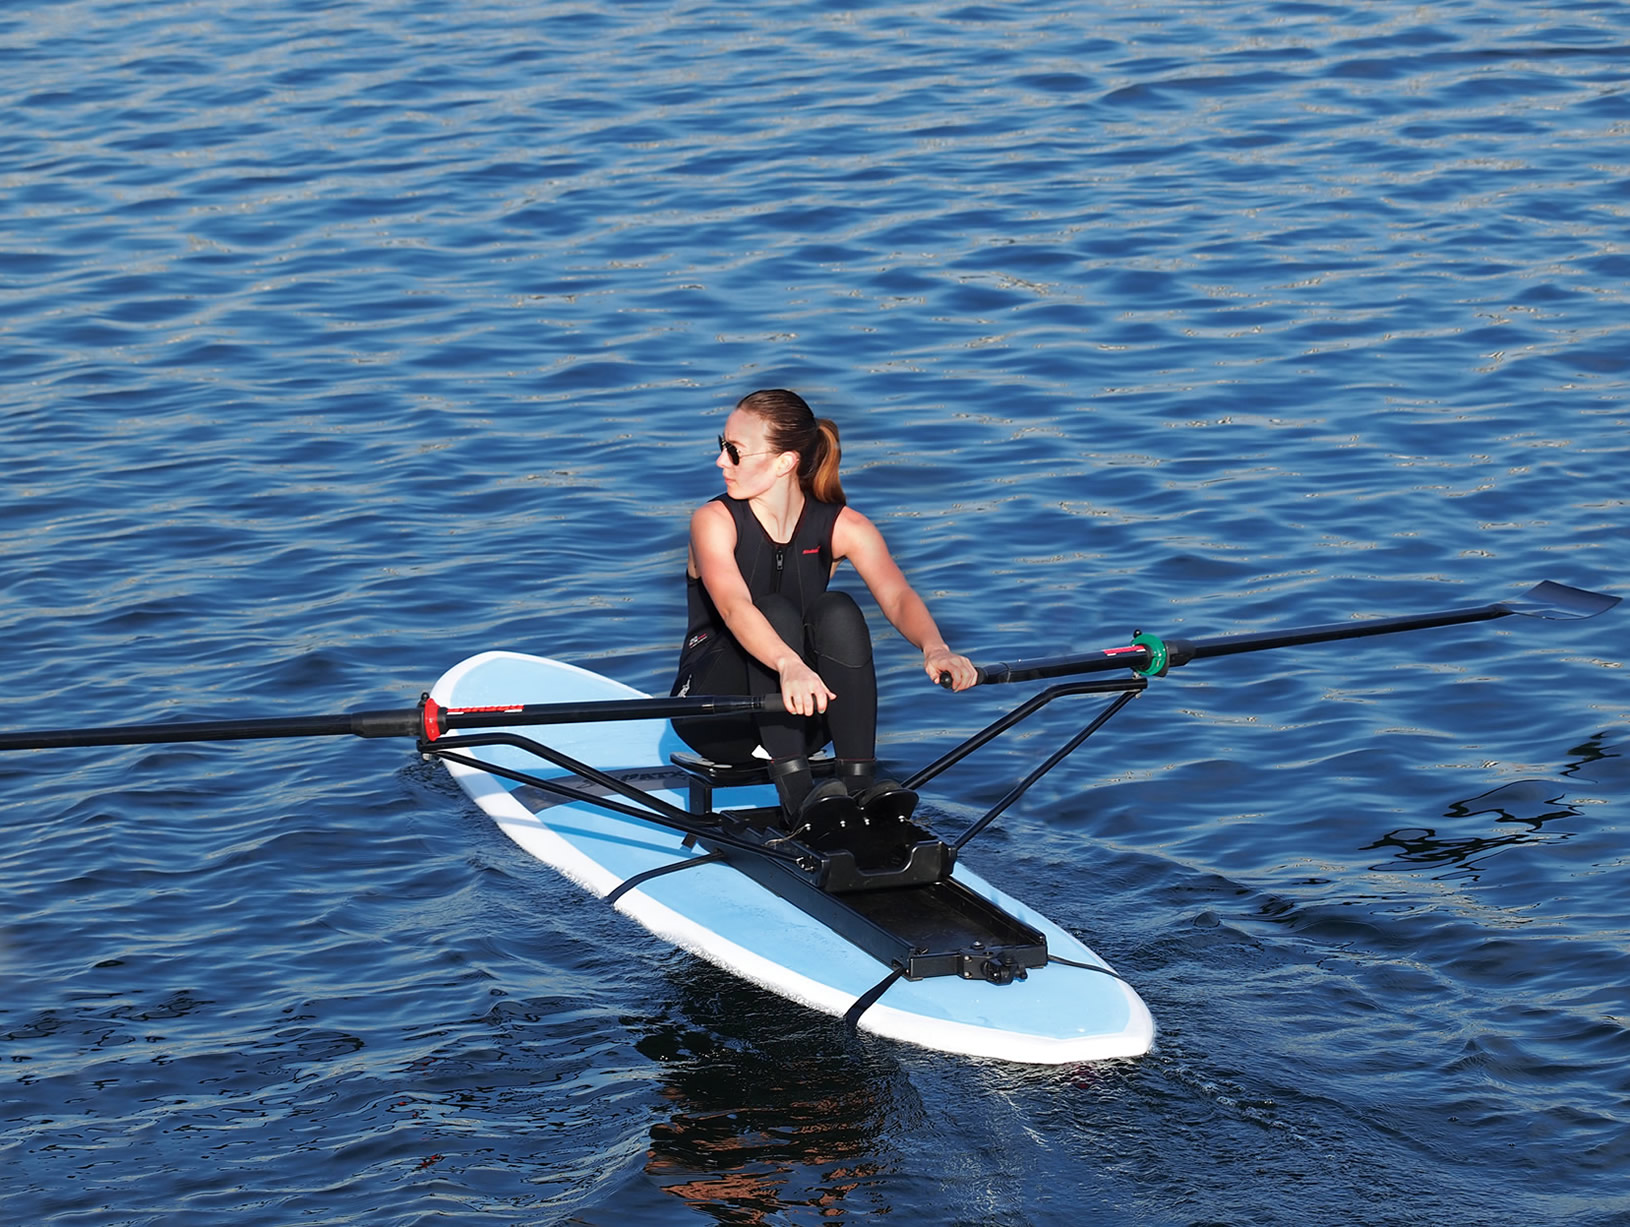 katie-oar-board-stand-up-paddle-rower-whitehall-rowing-and-sail